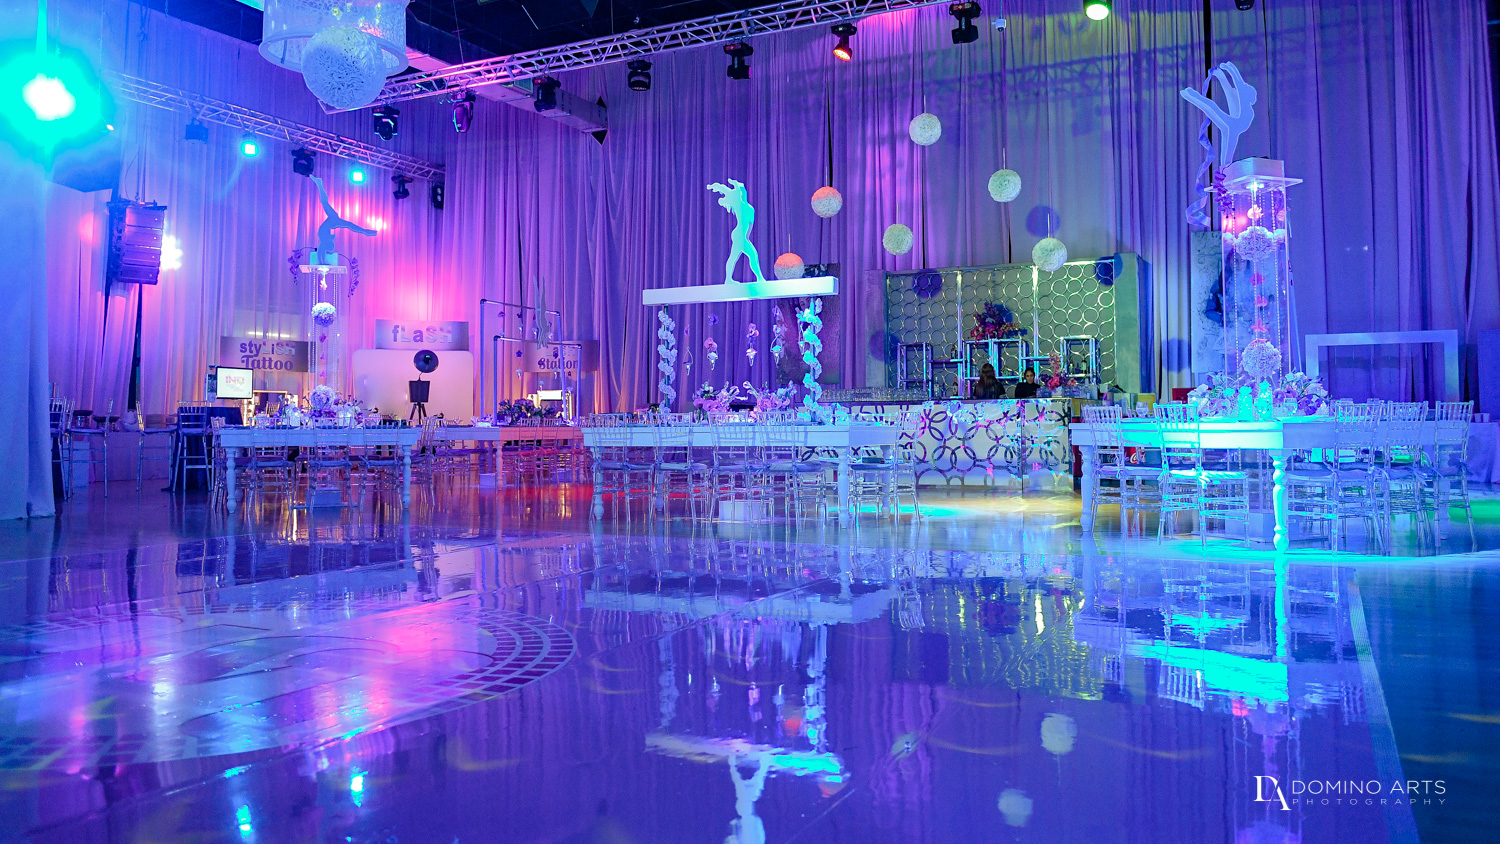 Gymnastics Theme decor for Bat Mitzvah Photography at Xtreme Action Park by Domino Arts